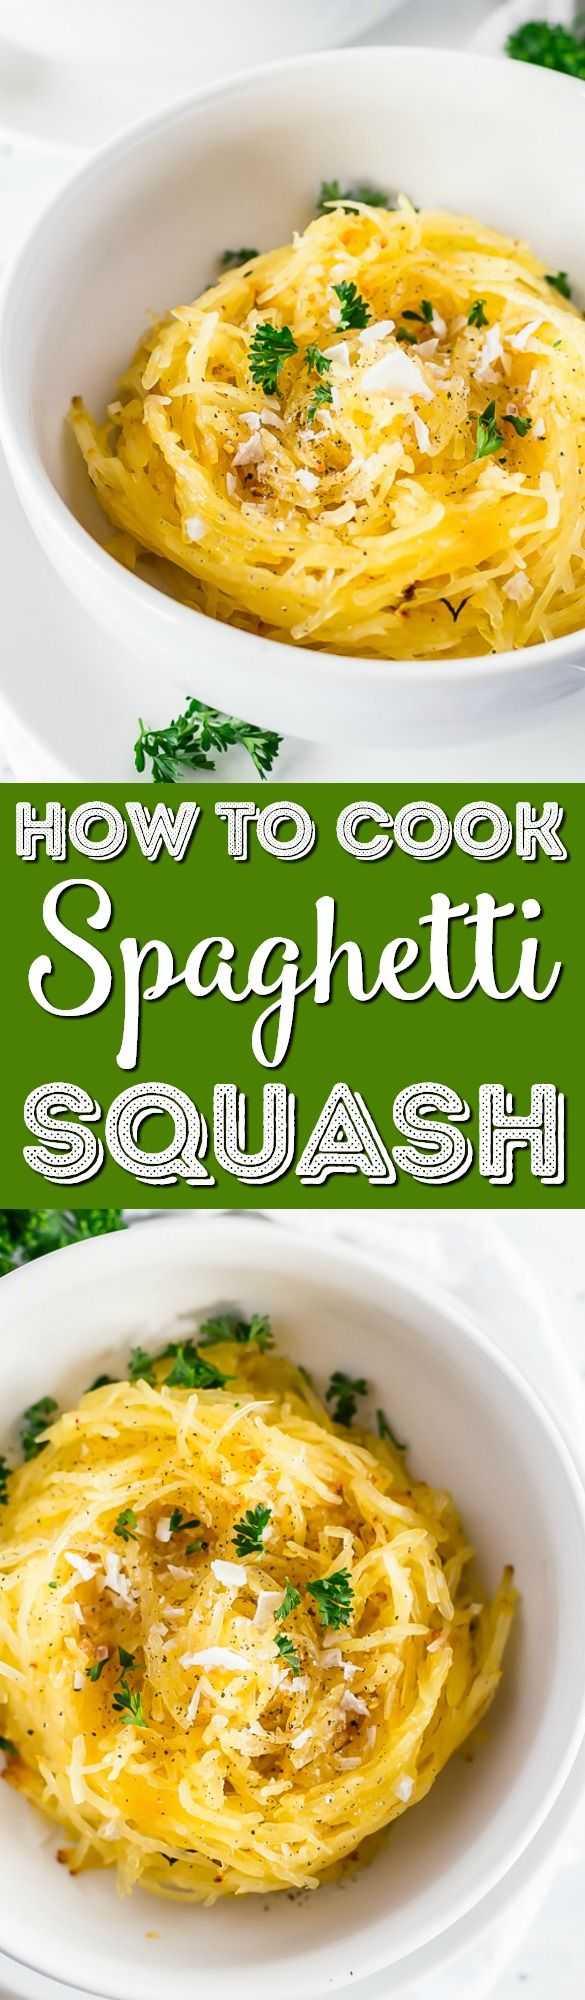 Use this simple step-by-step guide for How to Cook Spaghetti Squash in the oven for a delicious and healthy side dish, lunch, or dinner recipe!